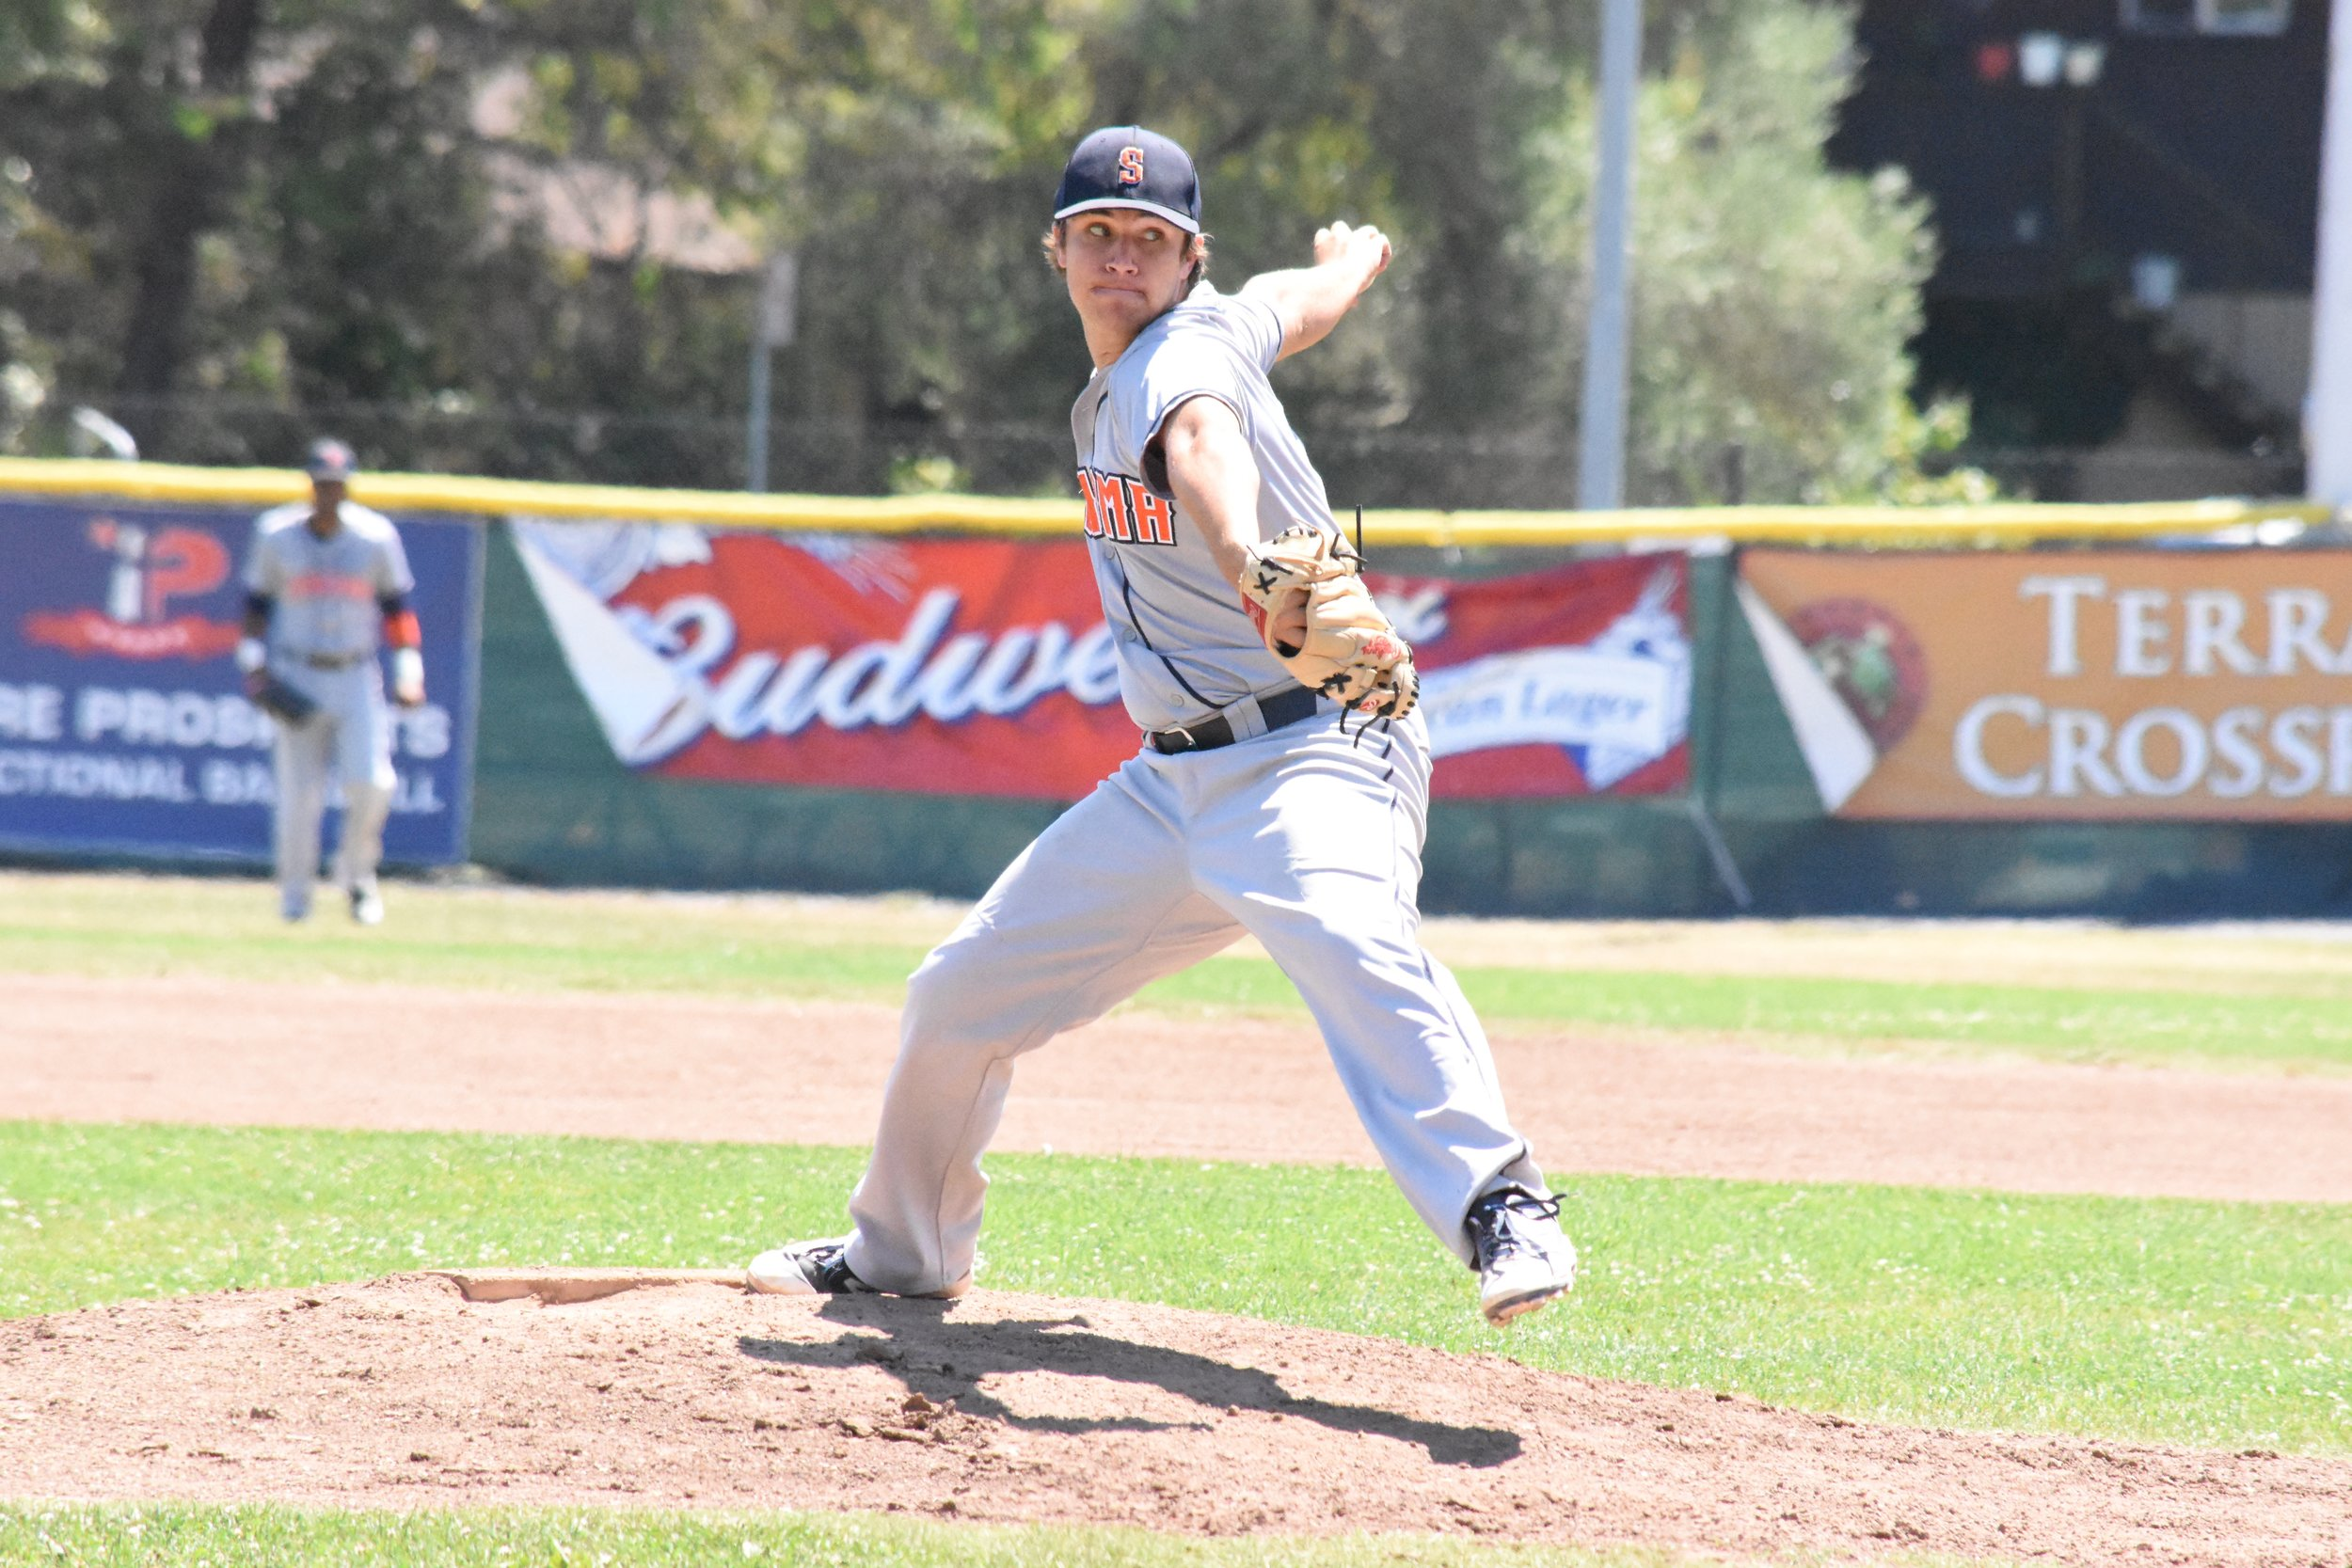 Starter Taylor Thurber struck out nine in seven and one-thirds innings pitched in Sunday's 7-6 loss to the San Rafael Pacifics at Albert Park. (James W. Toy III / Sonoma Stompers)